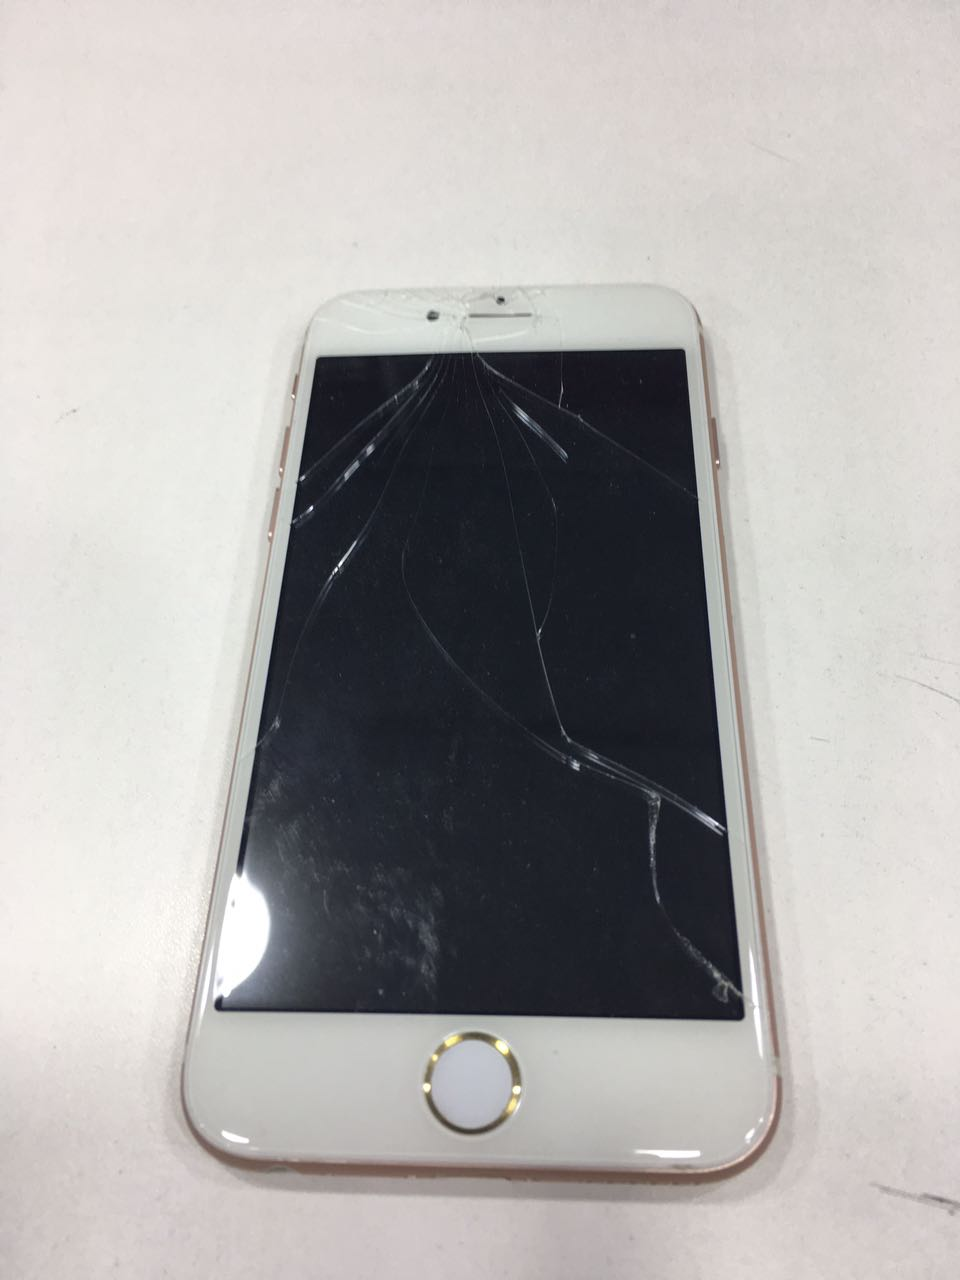 Why me?!? Story of a broken iPhone 6 screen in Dubai